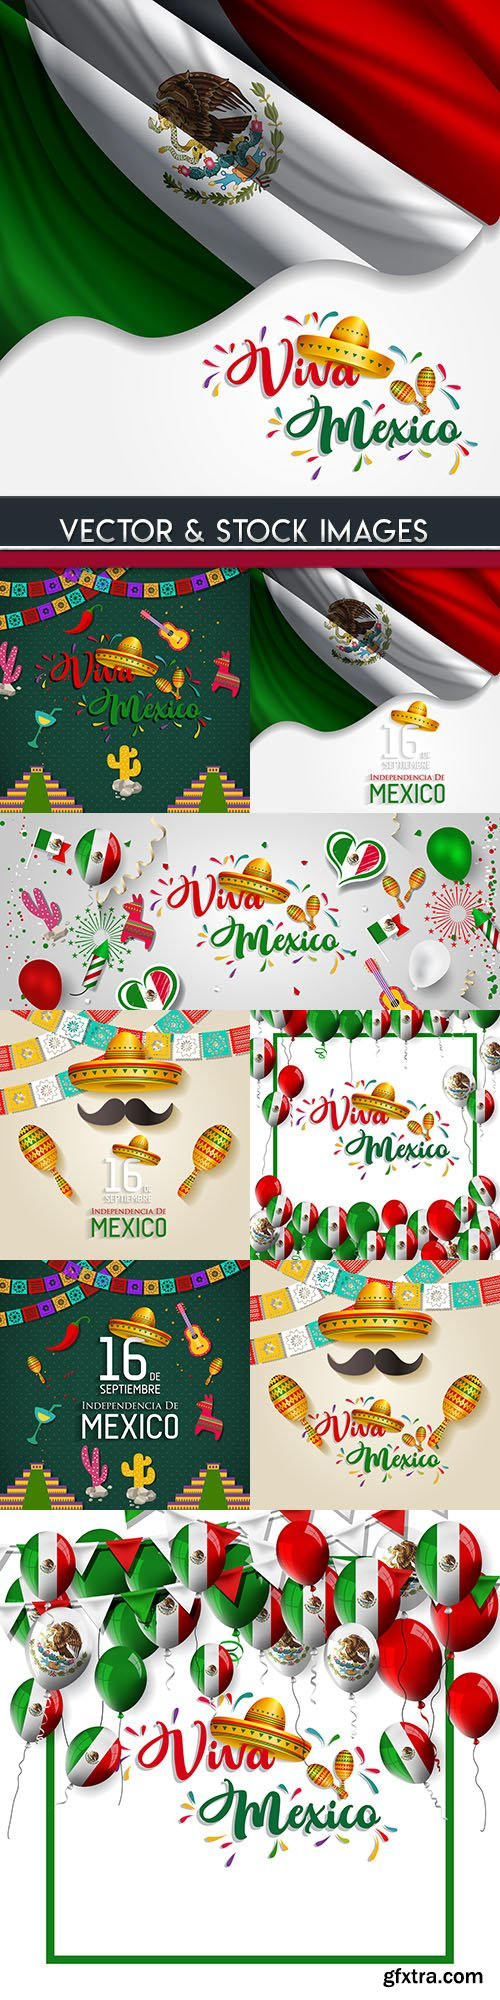 Mexico national day and Viva Mexico illustration design